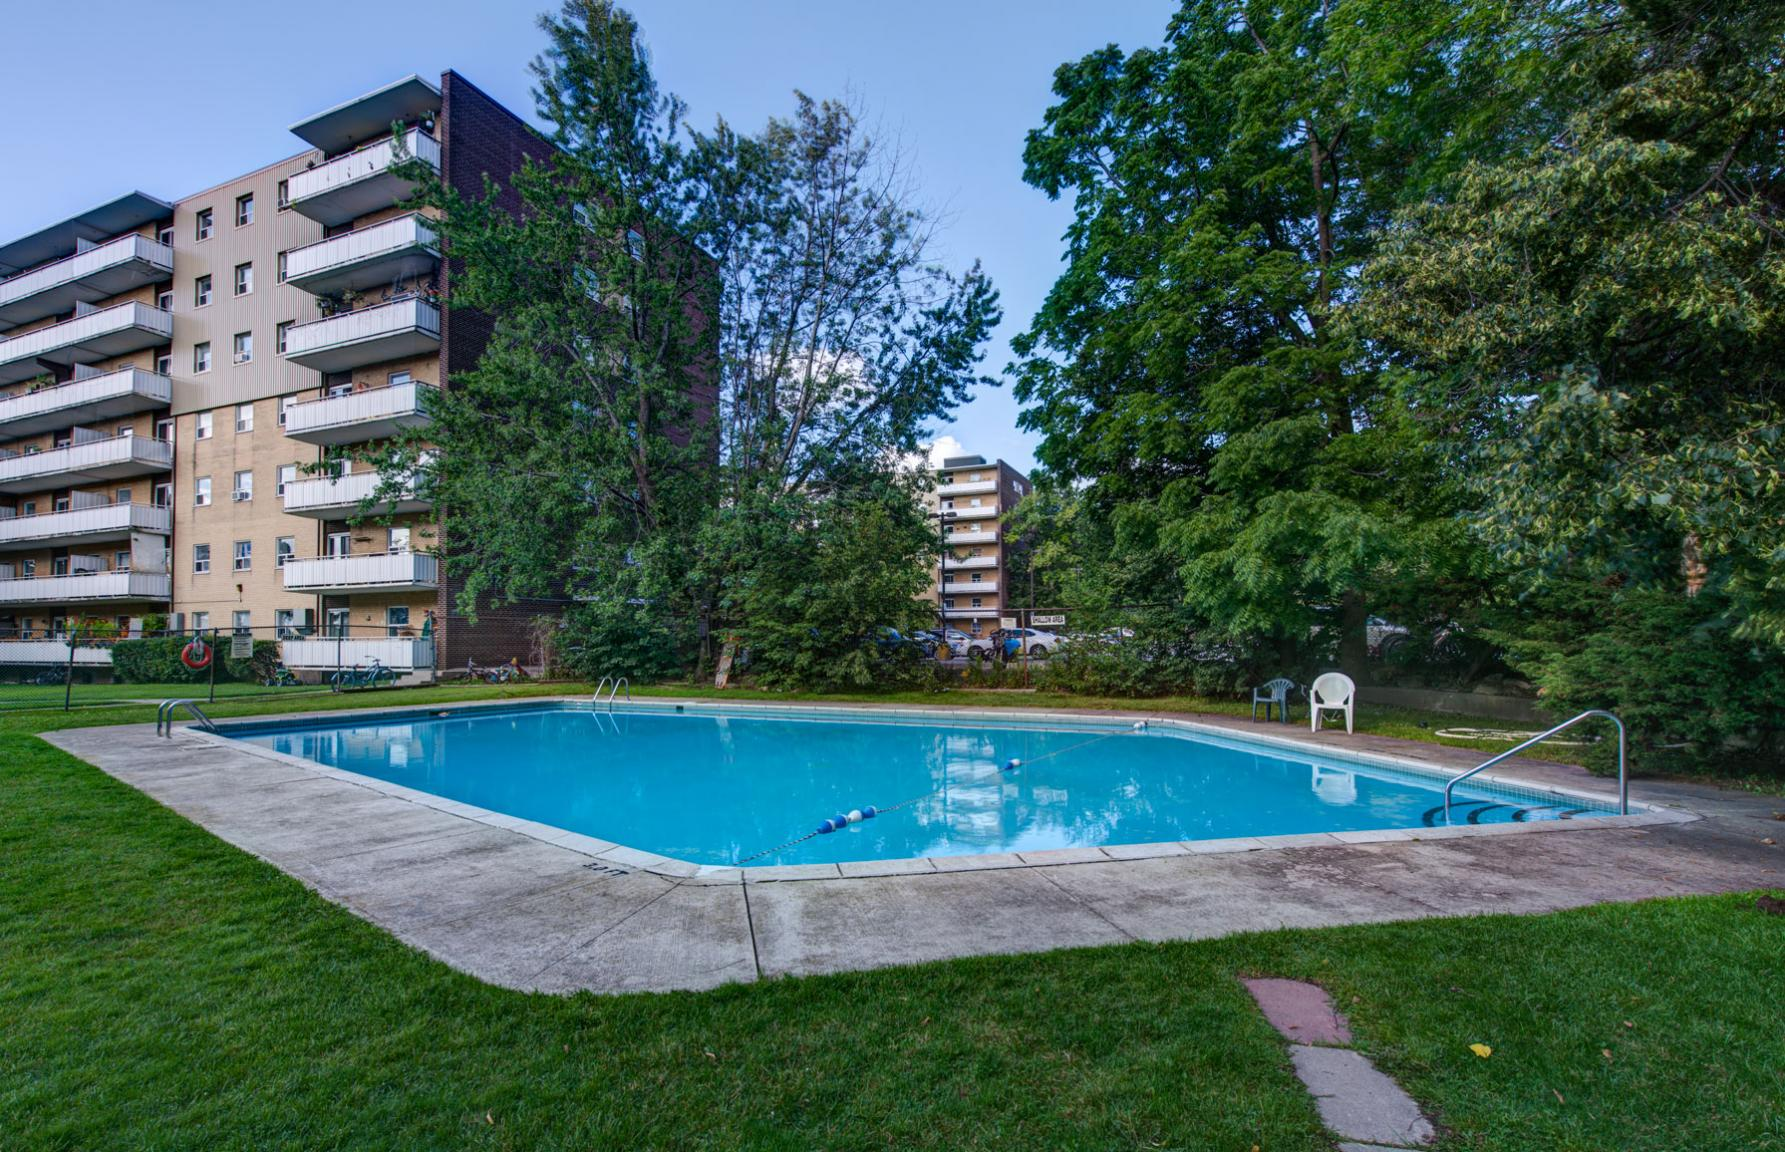 Studio / Bachelor Apartments for rent in Etobicoke at Lake Promenade Community - Photo 25 - RentersPages – L168089